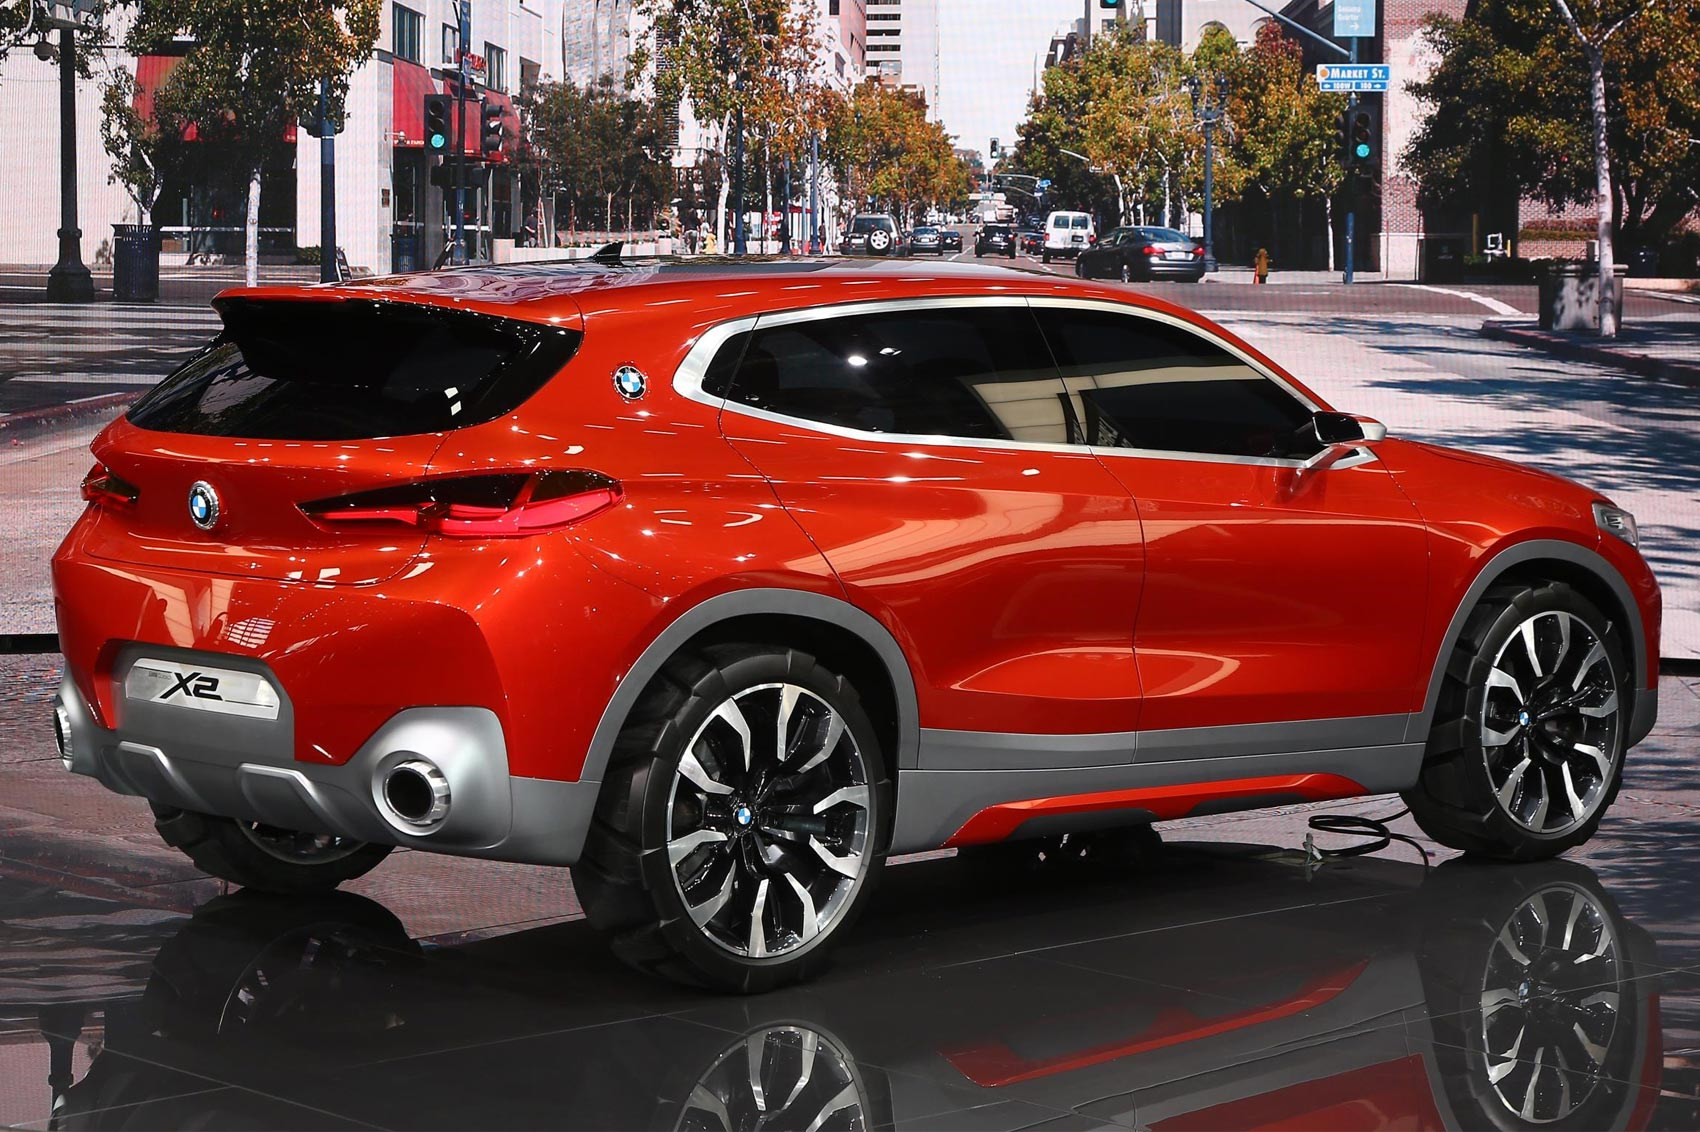 New BMW Concept X2: they've gone and shrunk the X6 again ...